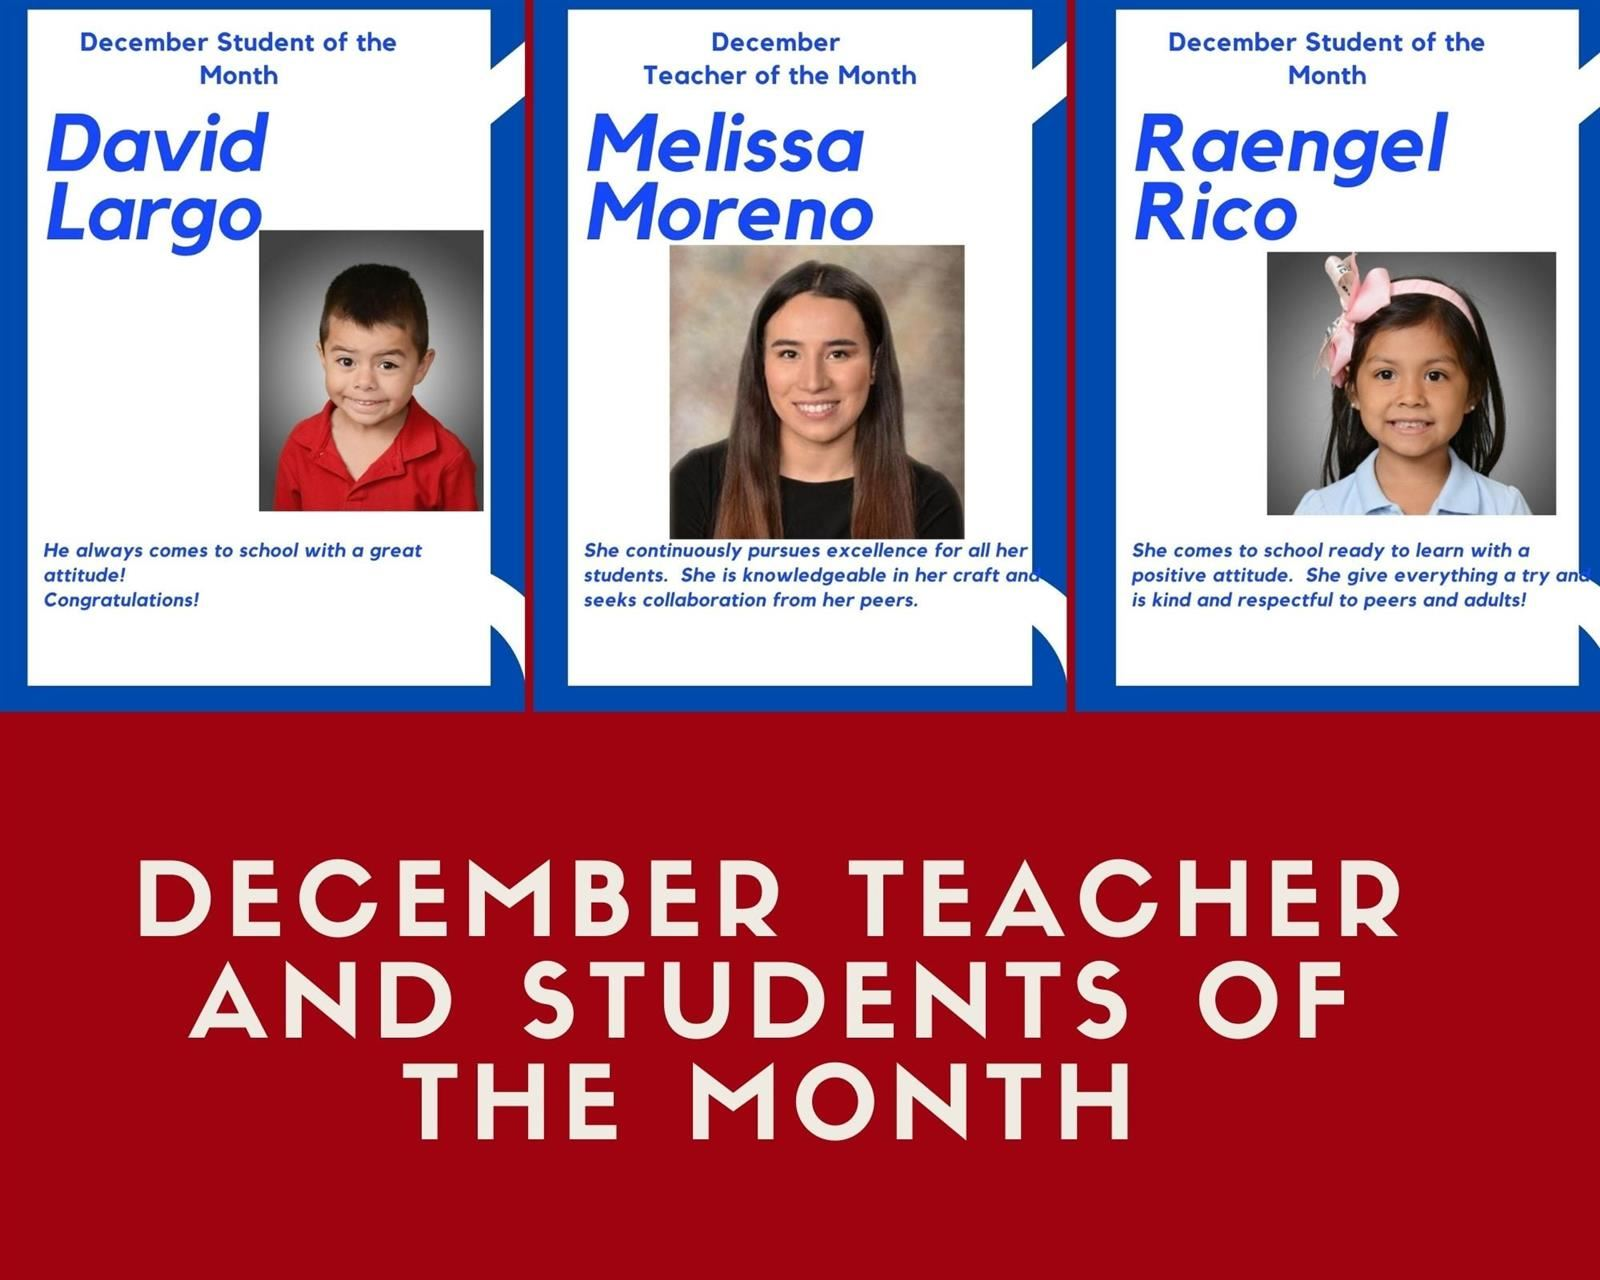 Teacher of the Month Melissa Moreno and Student of the Month David Largo and Raengel Rico